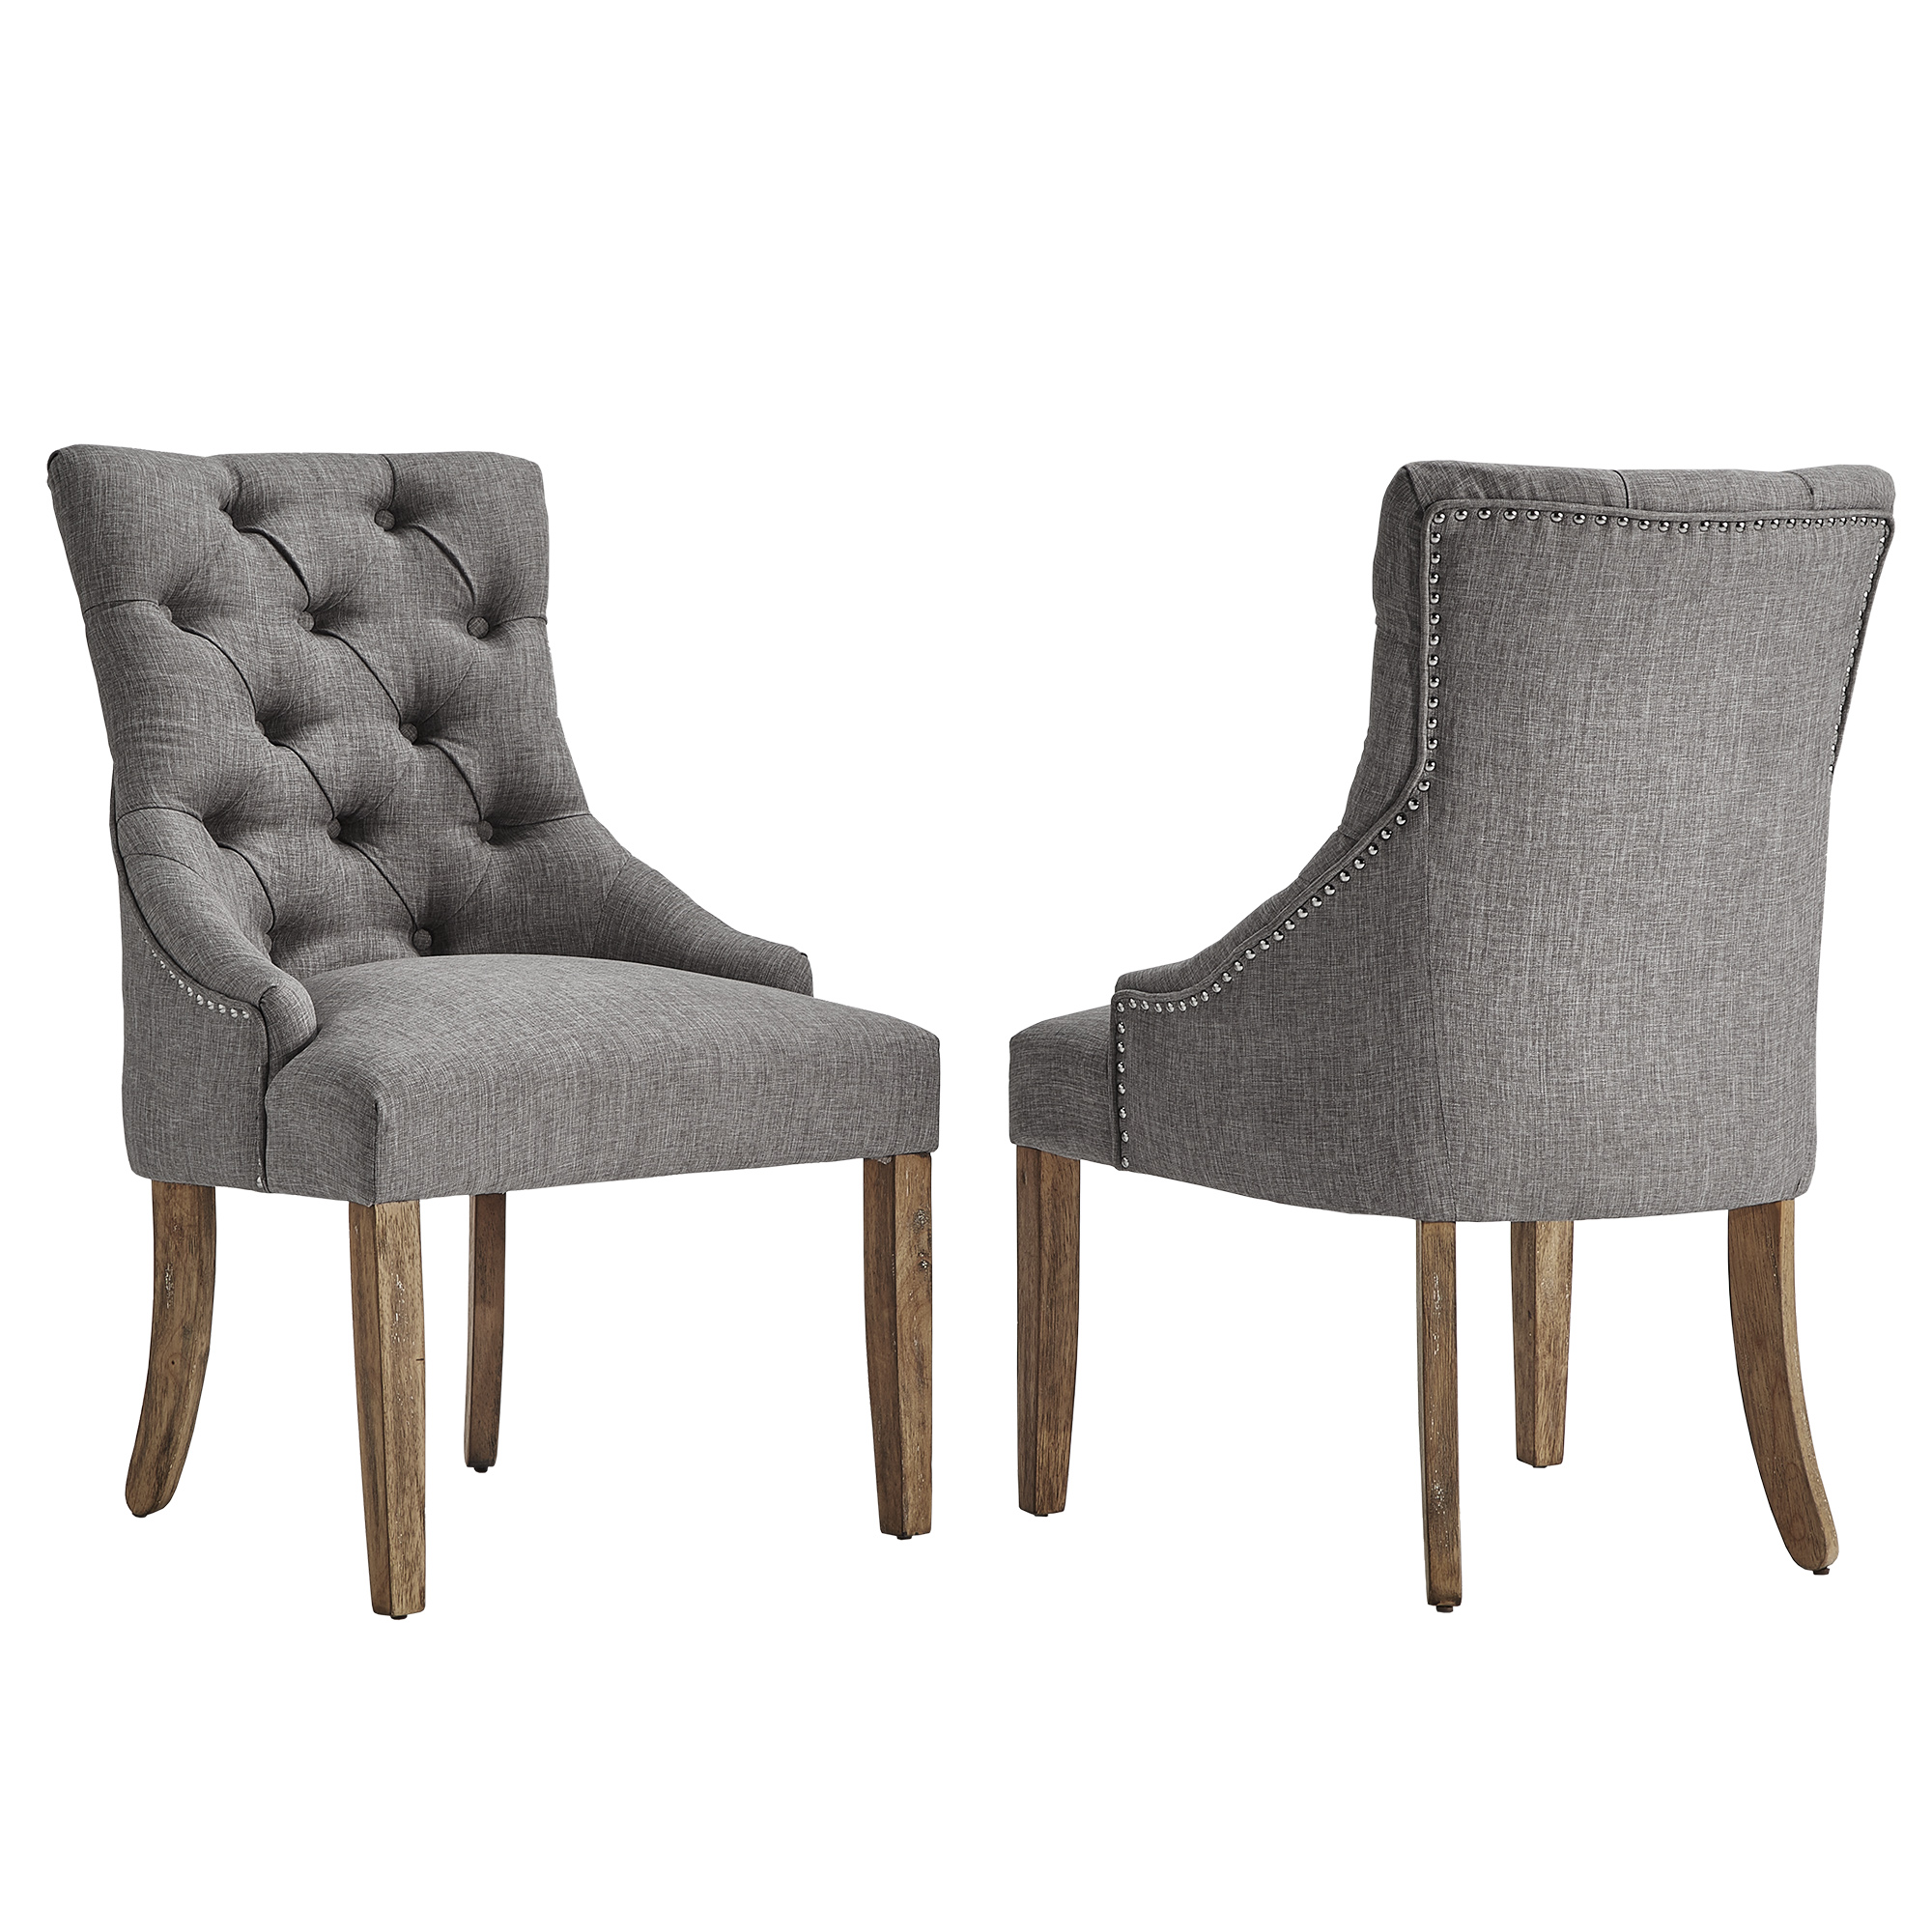 Chelsea Lane Curved Back Linen Tufted Dining Chair, Set of 2, Multiple Colors